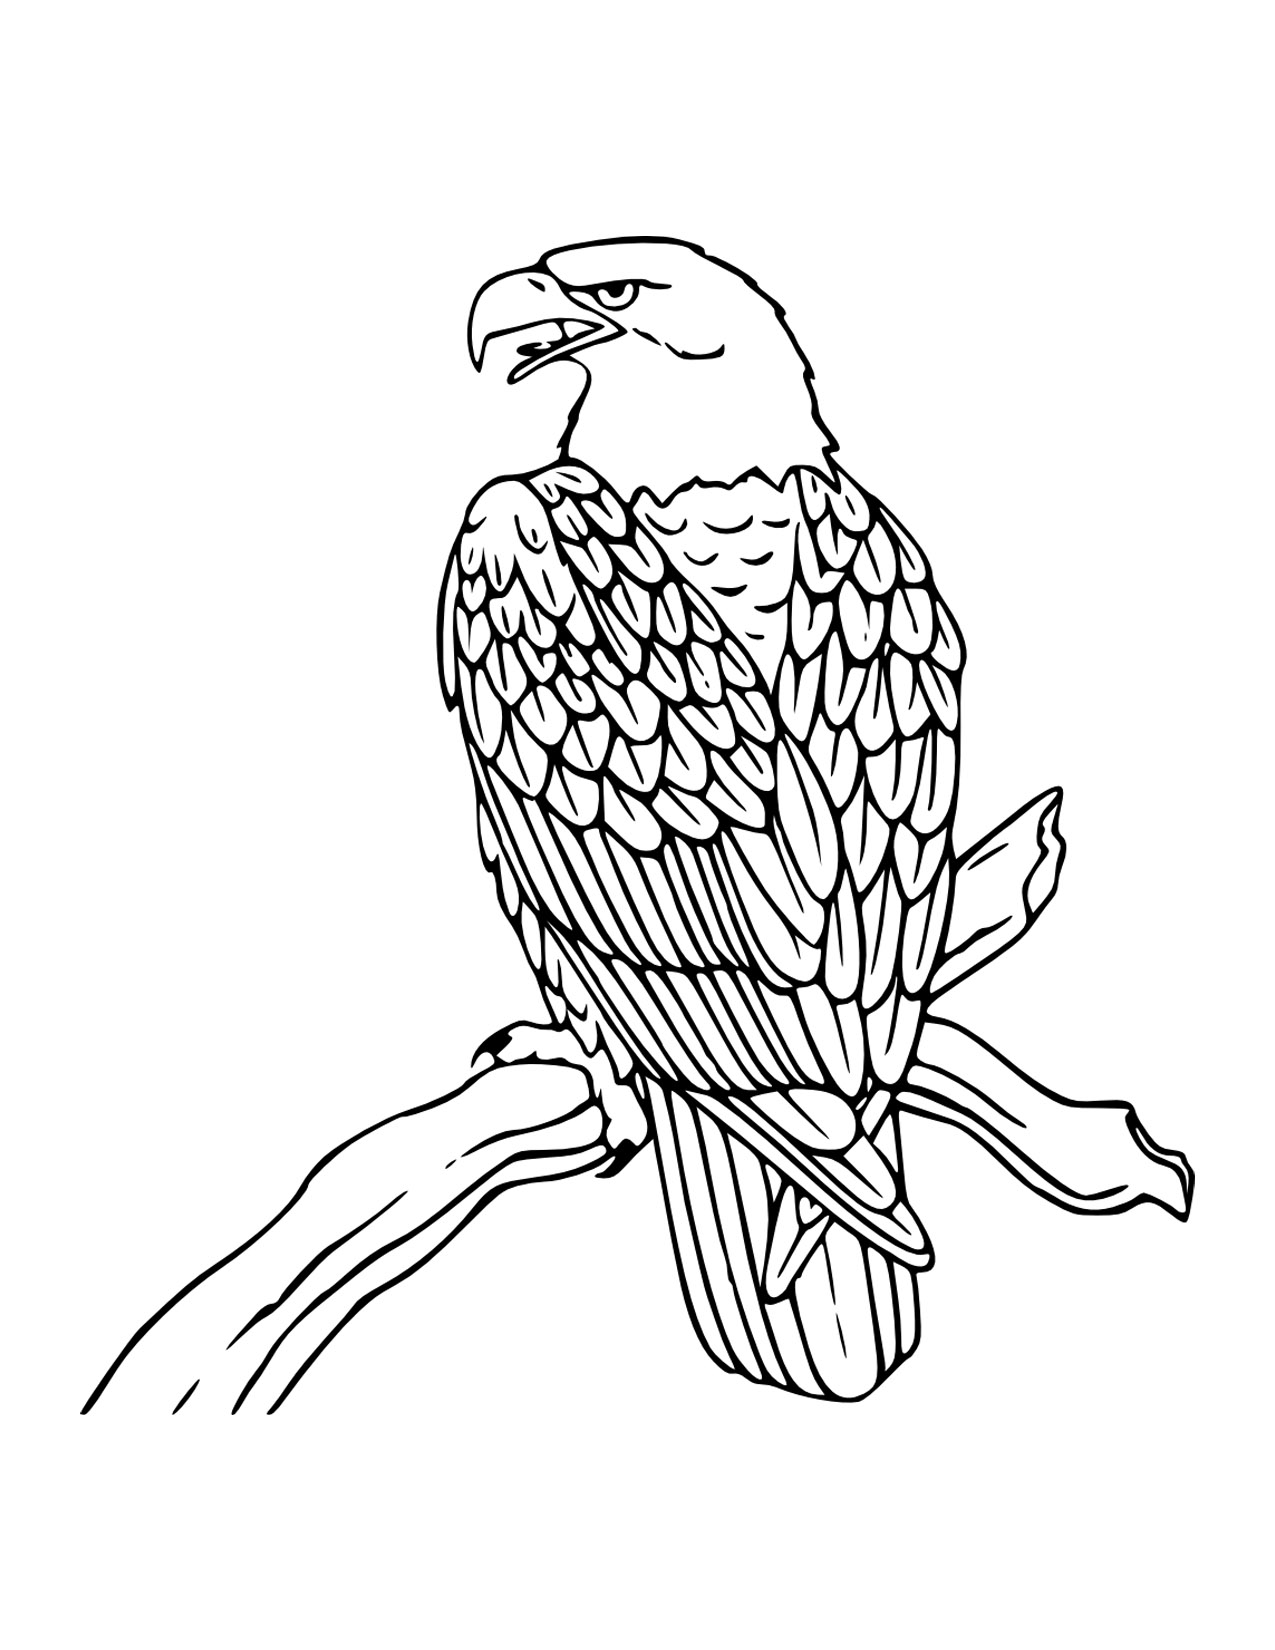 Bald Eagle coloring #7, Download drawings